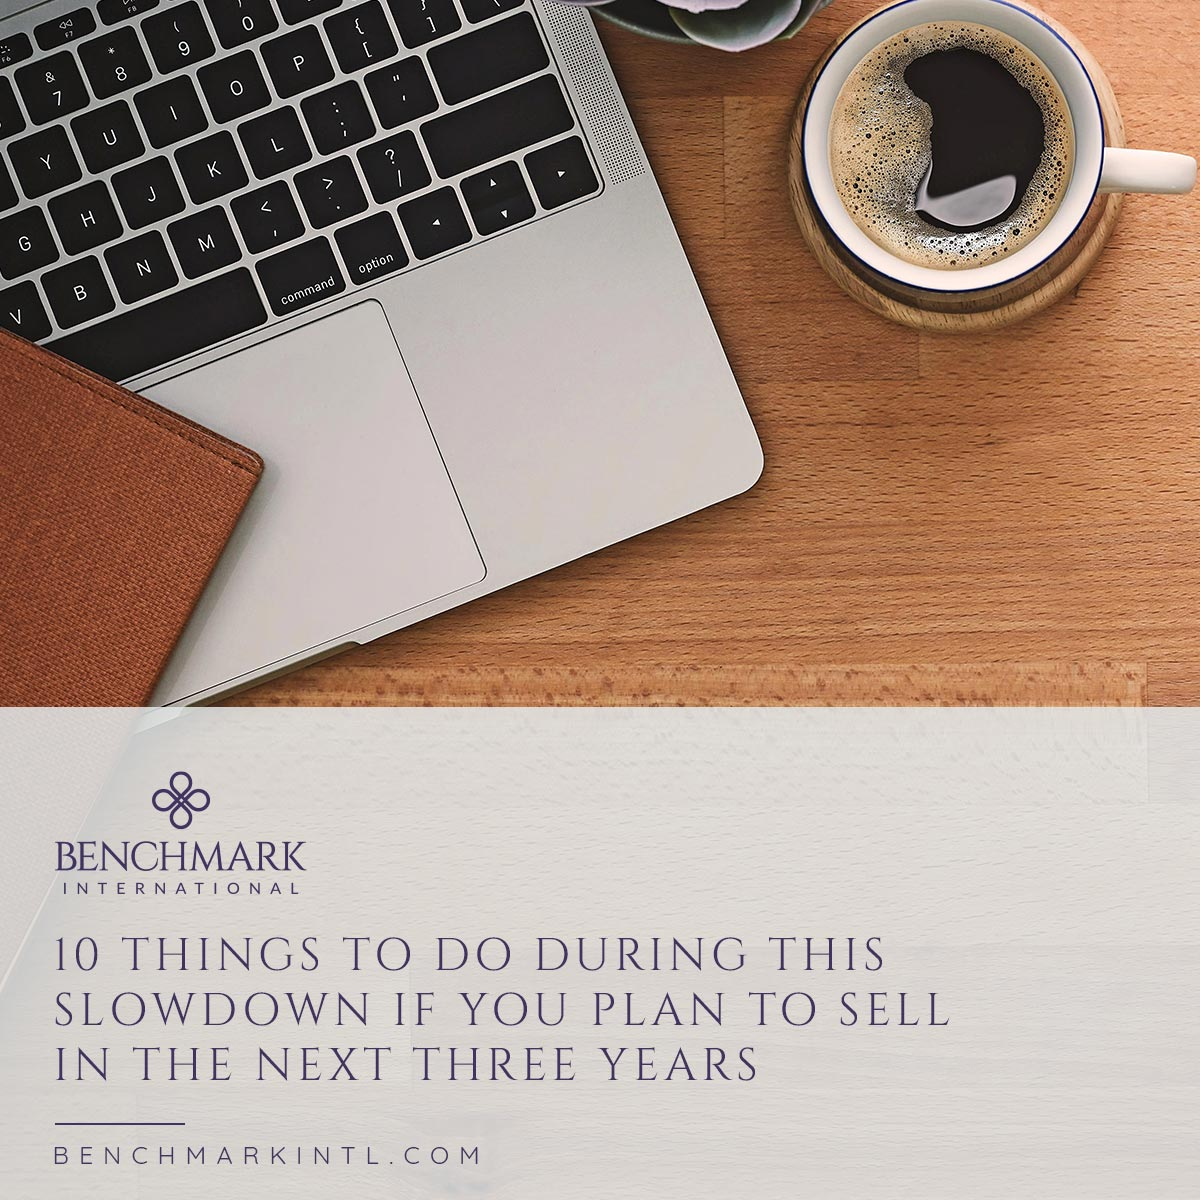 10_Things_To_Do_During_This_Slowdown_If_You_Plan_To_Sell_In_The_Next_Three_Years_Social